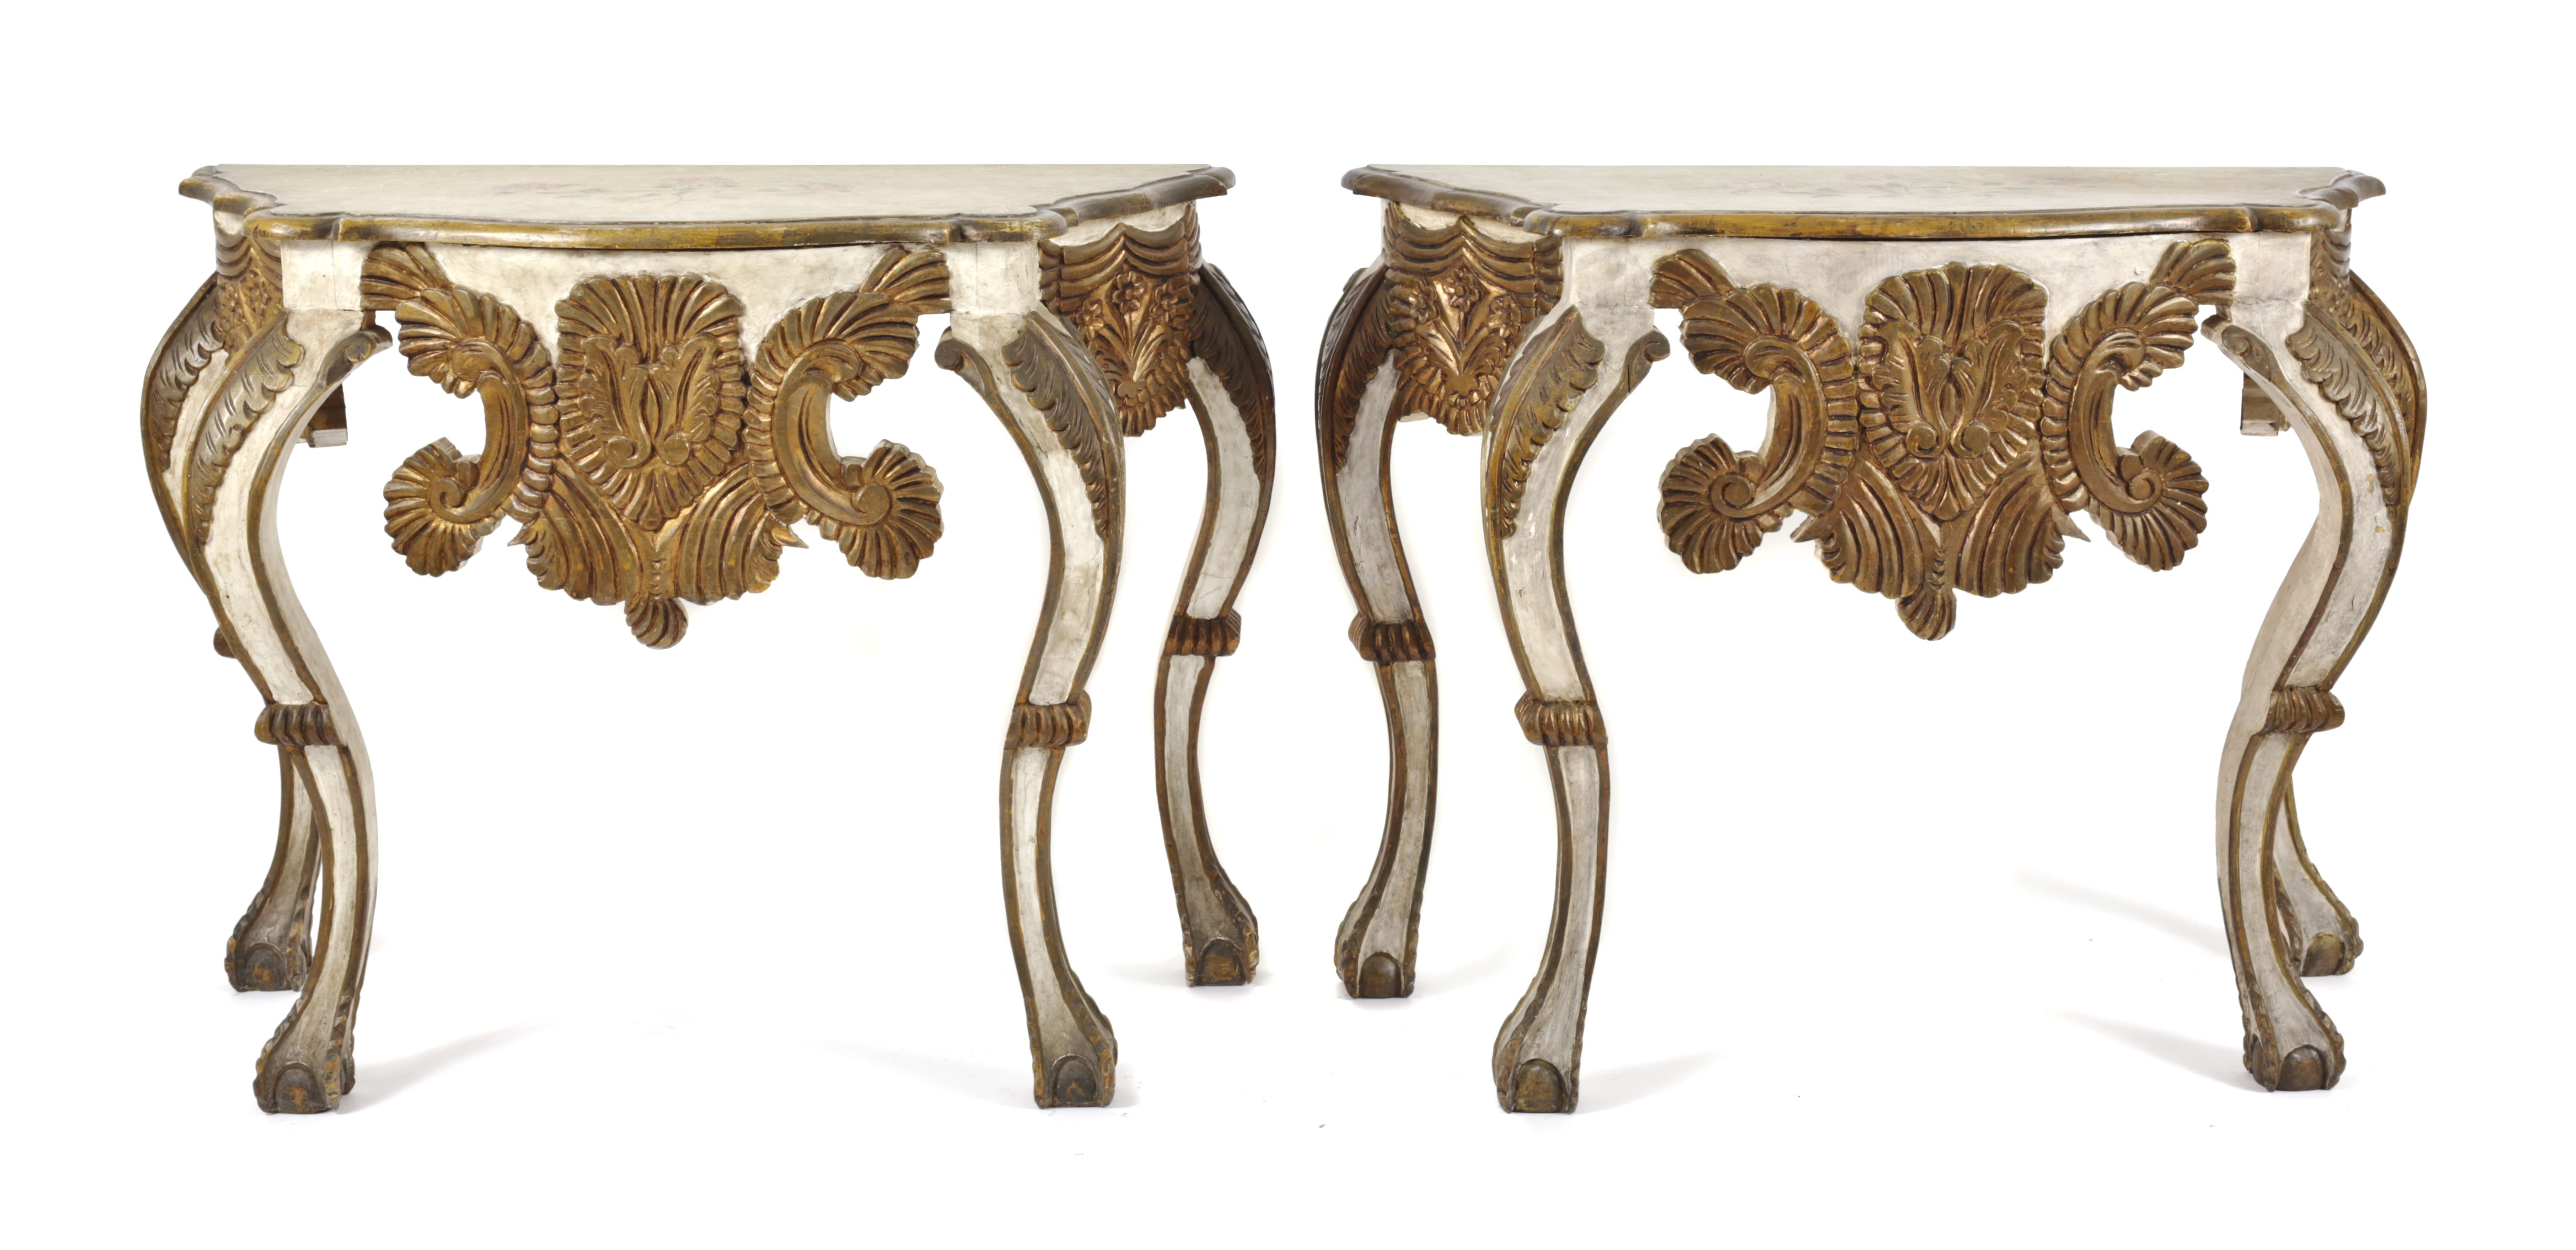 A Pair of Hispano-Portuguese Baroque Style Painted and Parcel Gilt